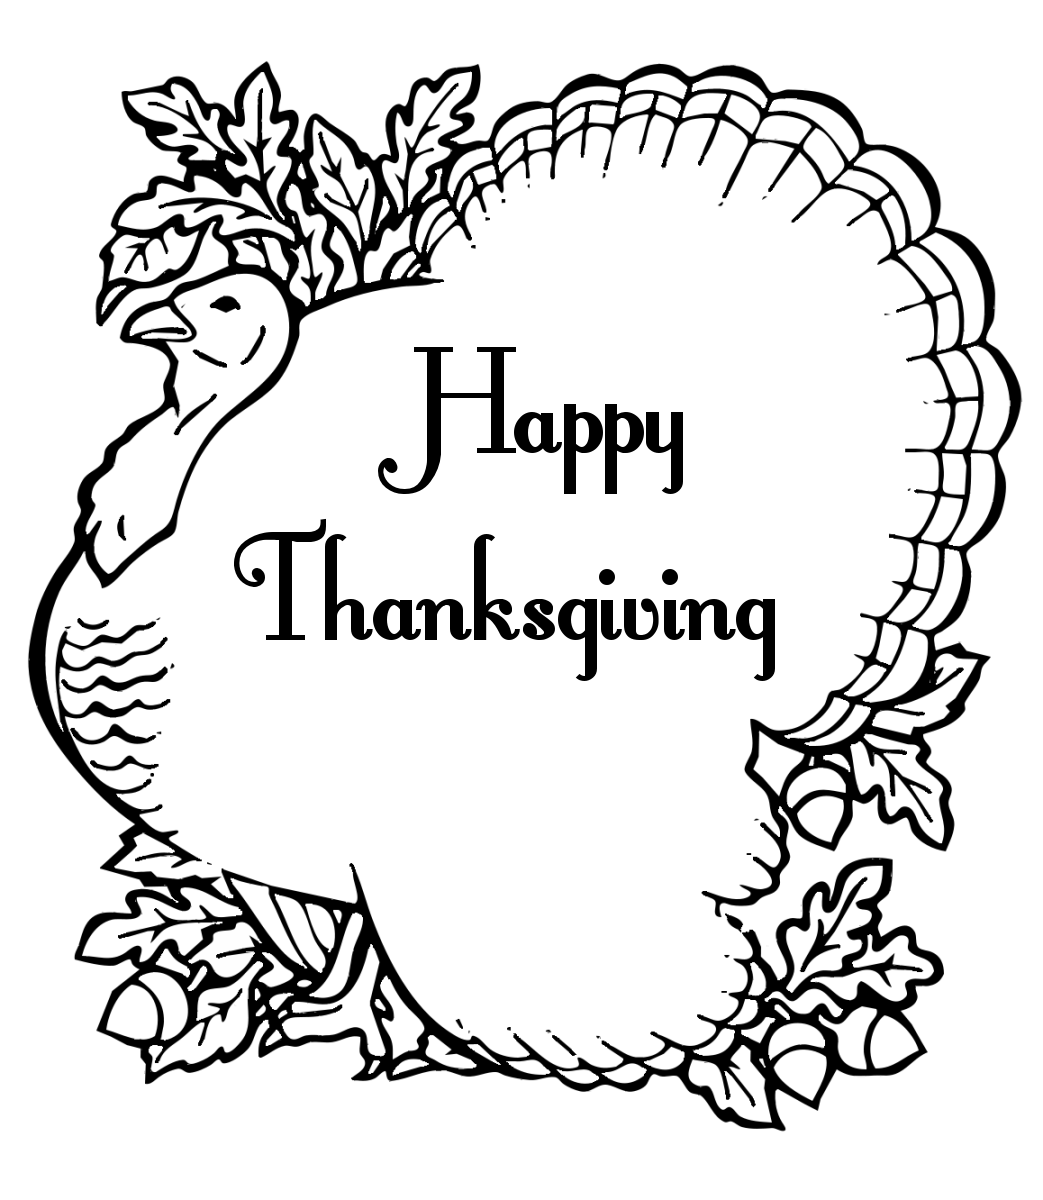 Thanksgiving Coloring Pages 2 Coloring Pages To Print Thanksgiving Coloring Pages Free